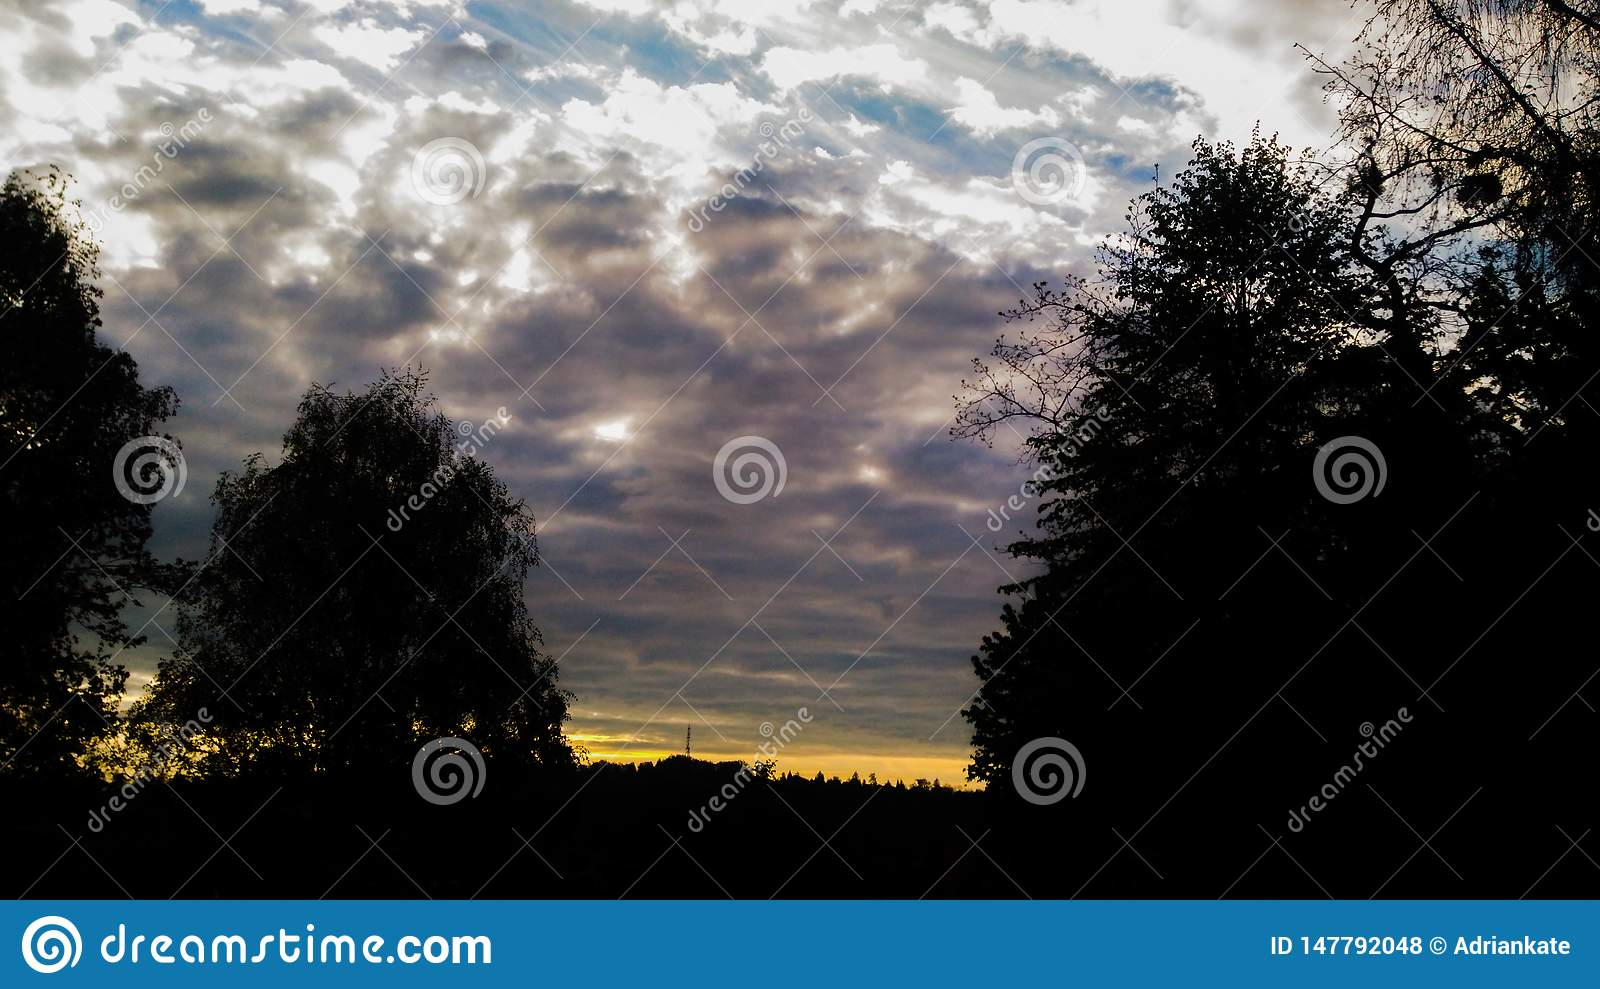 Sunset with clouds